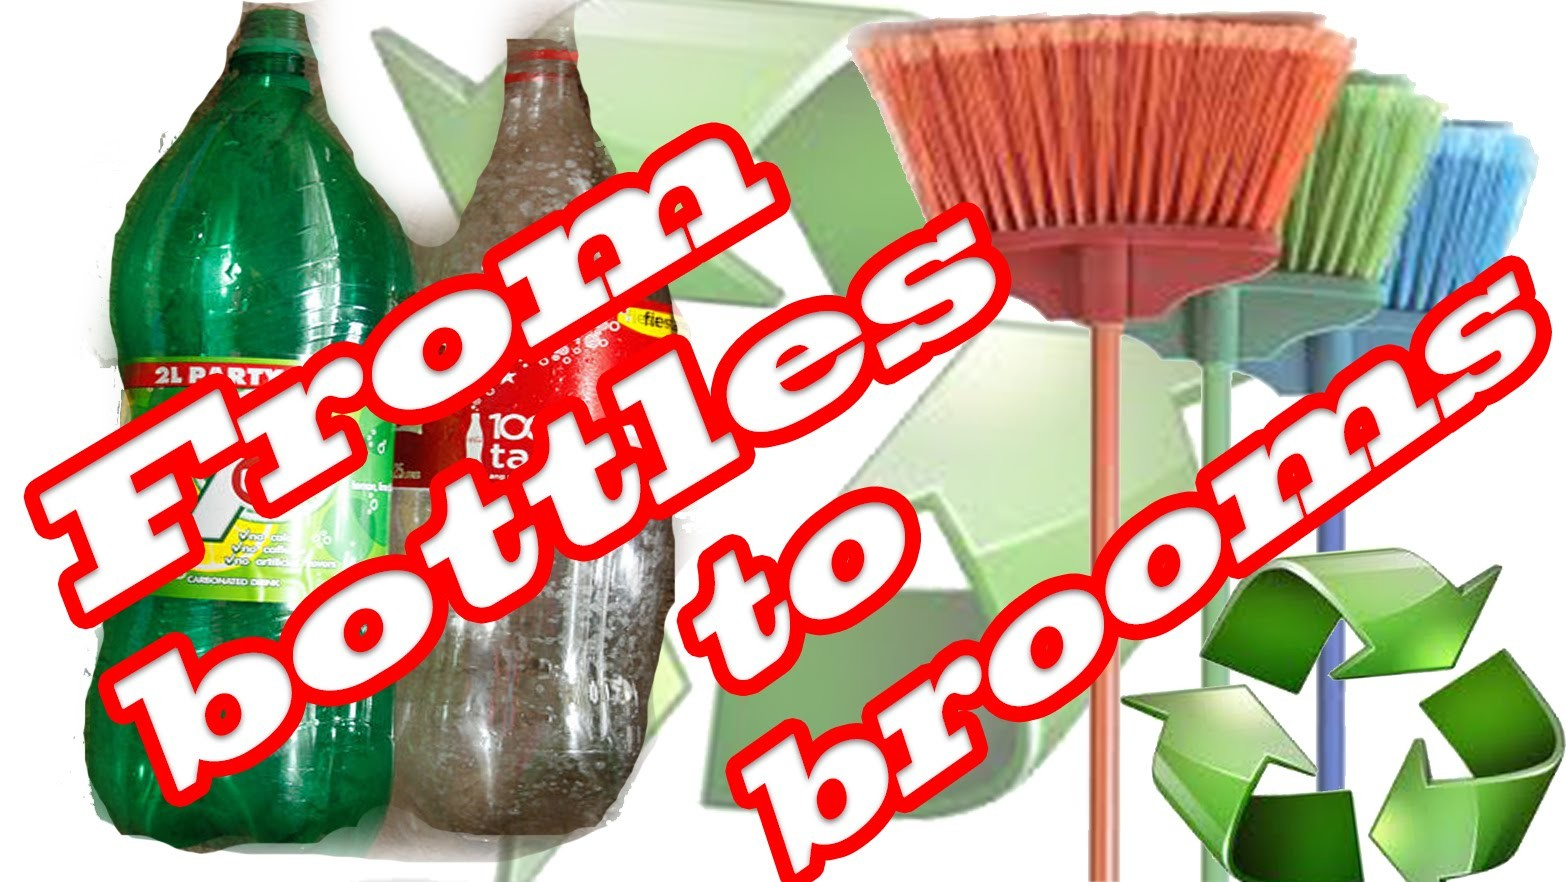 Most amazing recycling creations from bouttles to brooms for Amazing recycling projects